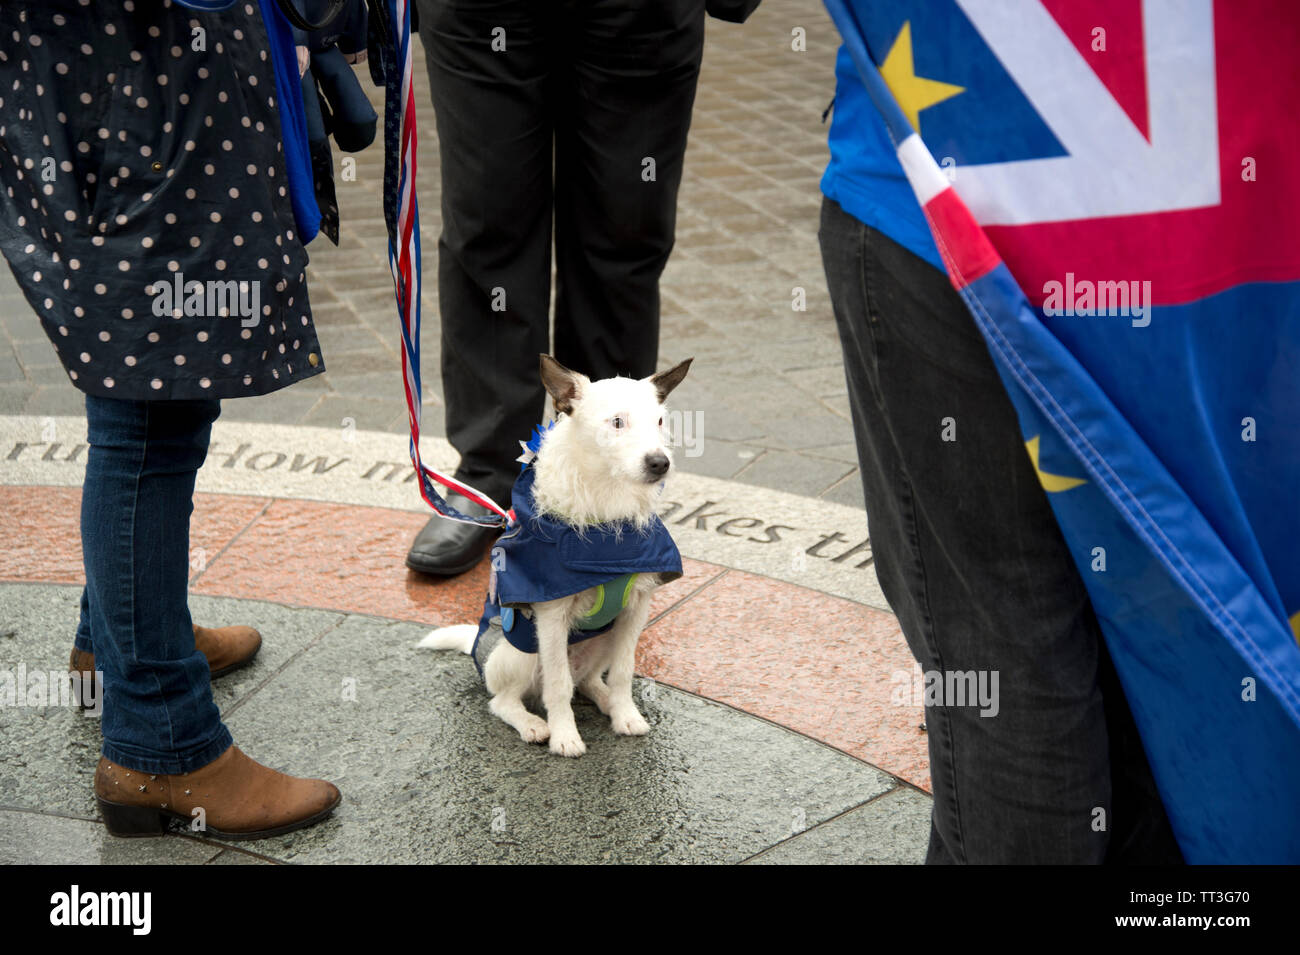 Parliament Square. Protest by Remain supporters. A dog sits patiently whilst protesters chat. - Stock Image